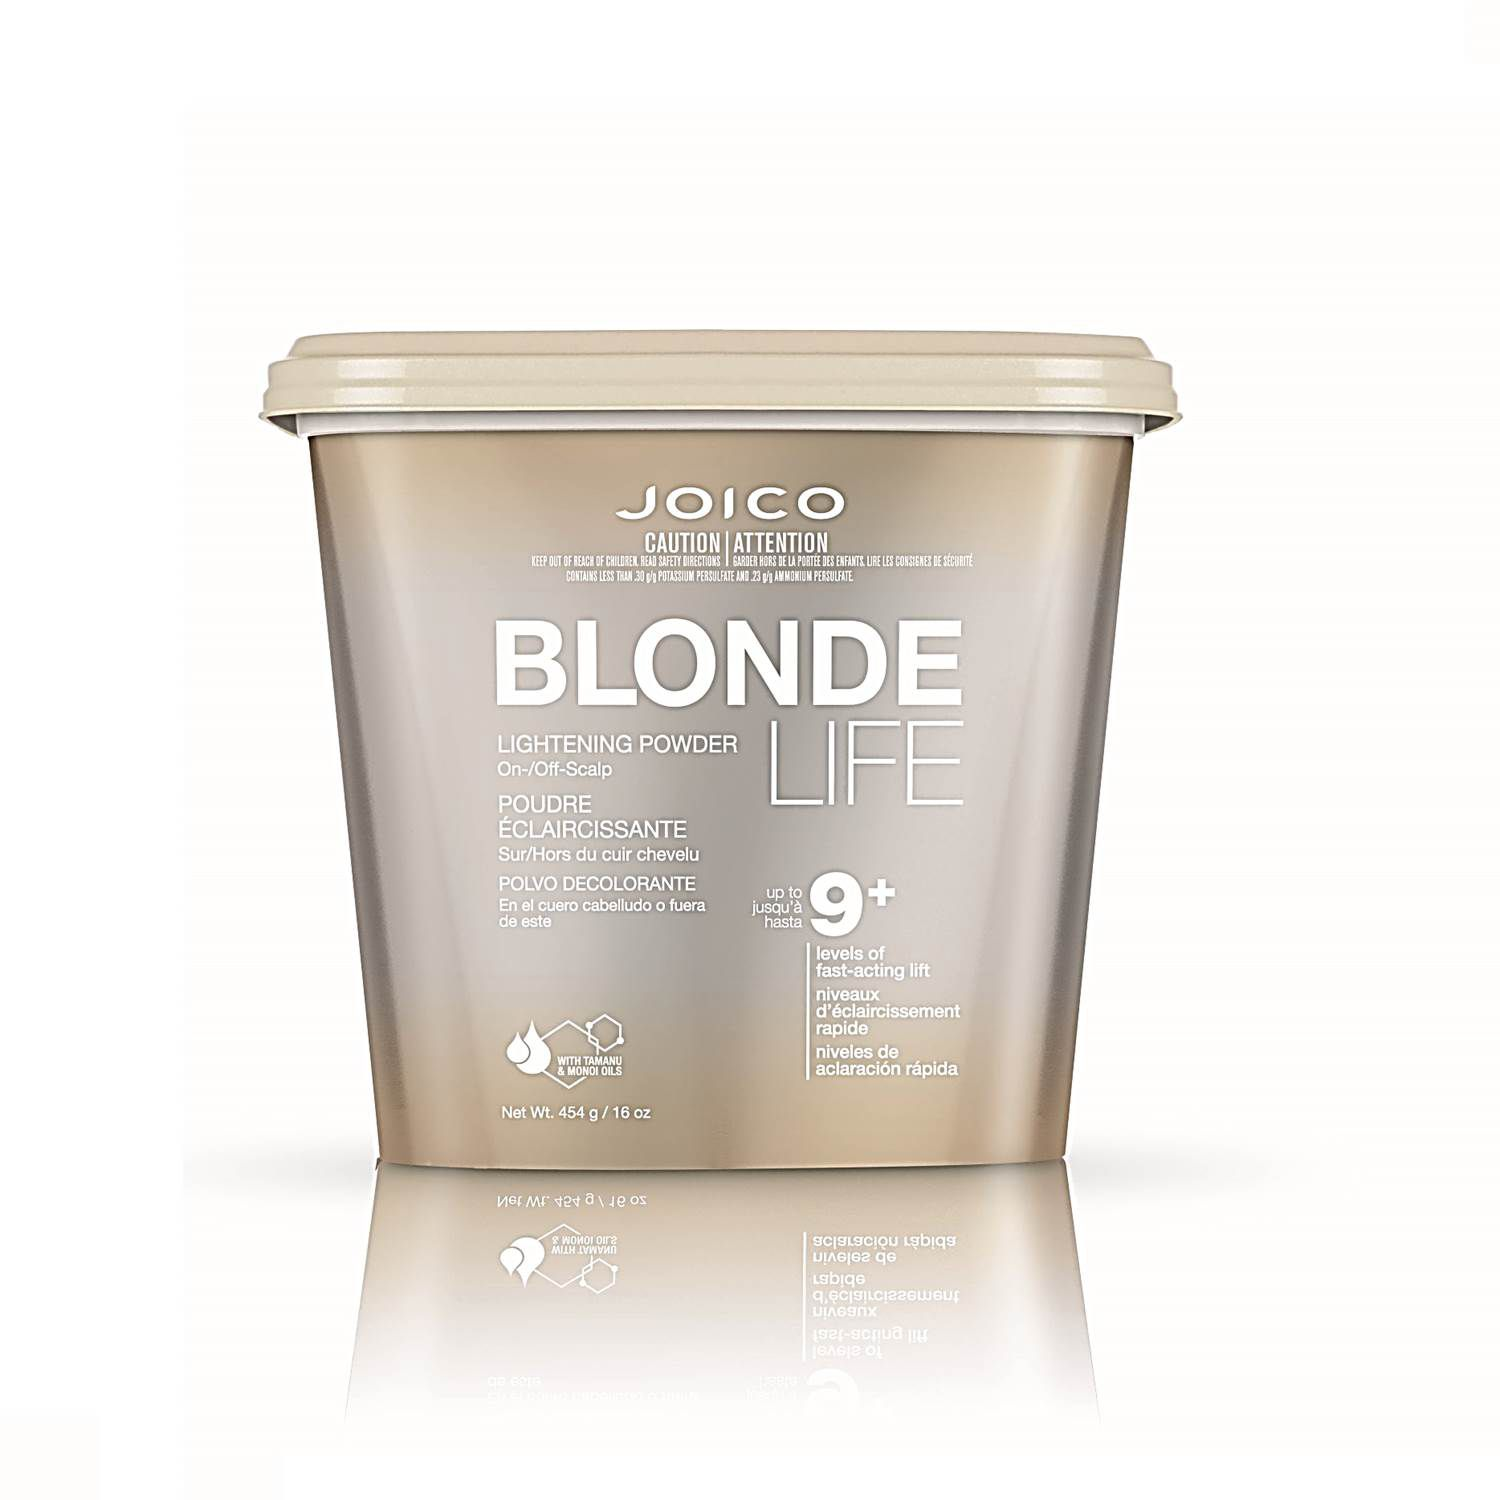 Joico Blonde Life Lightener Powder 454g